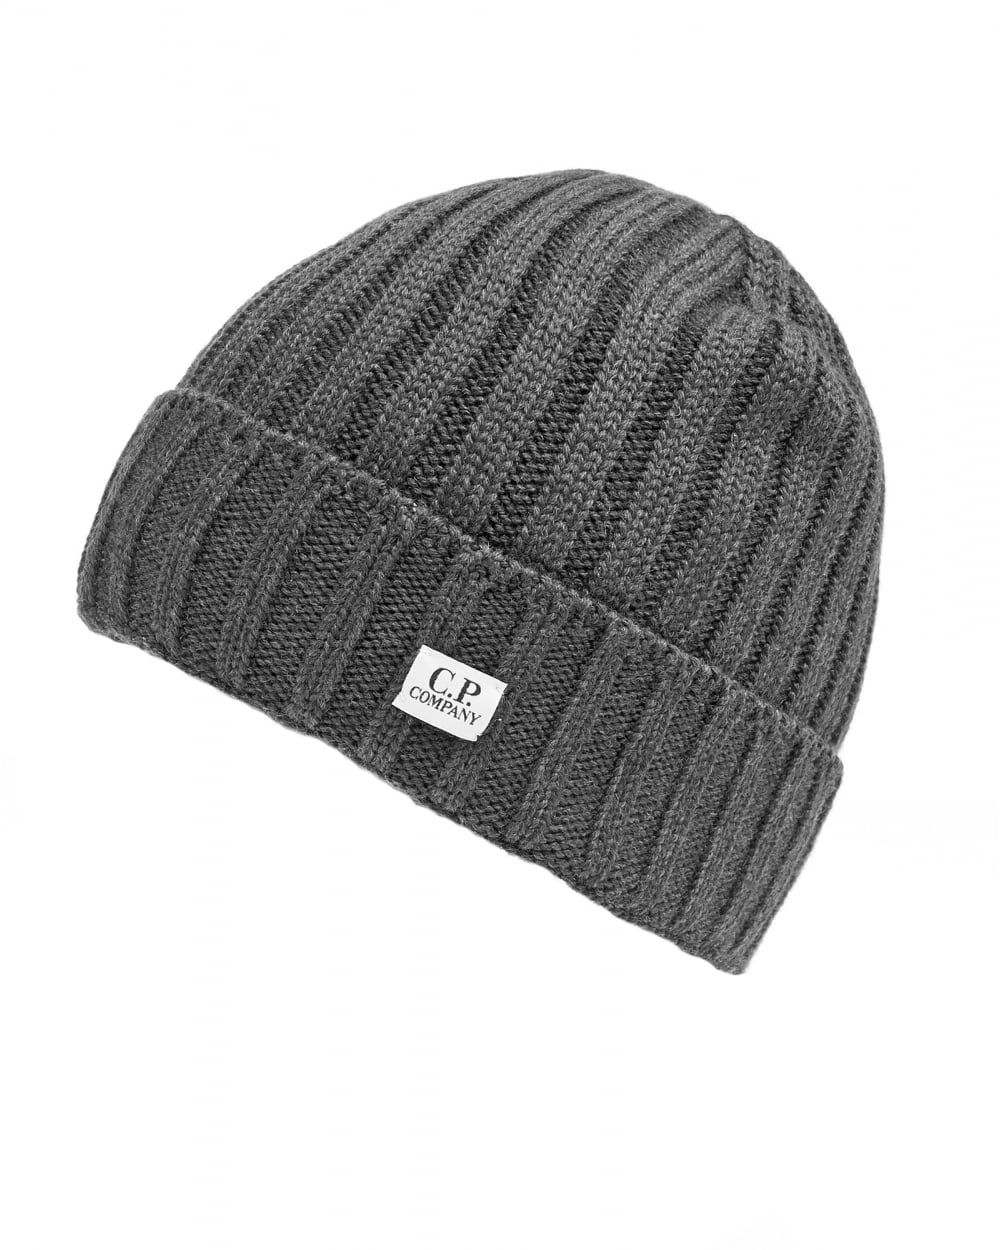 C.P. Company Mens Ribbed Label Grey Beanie Hat dbd5b0d7dca